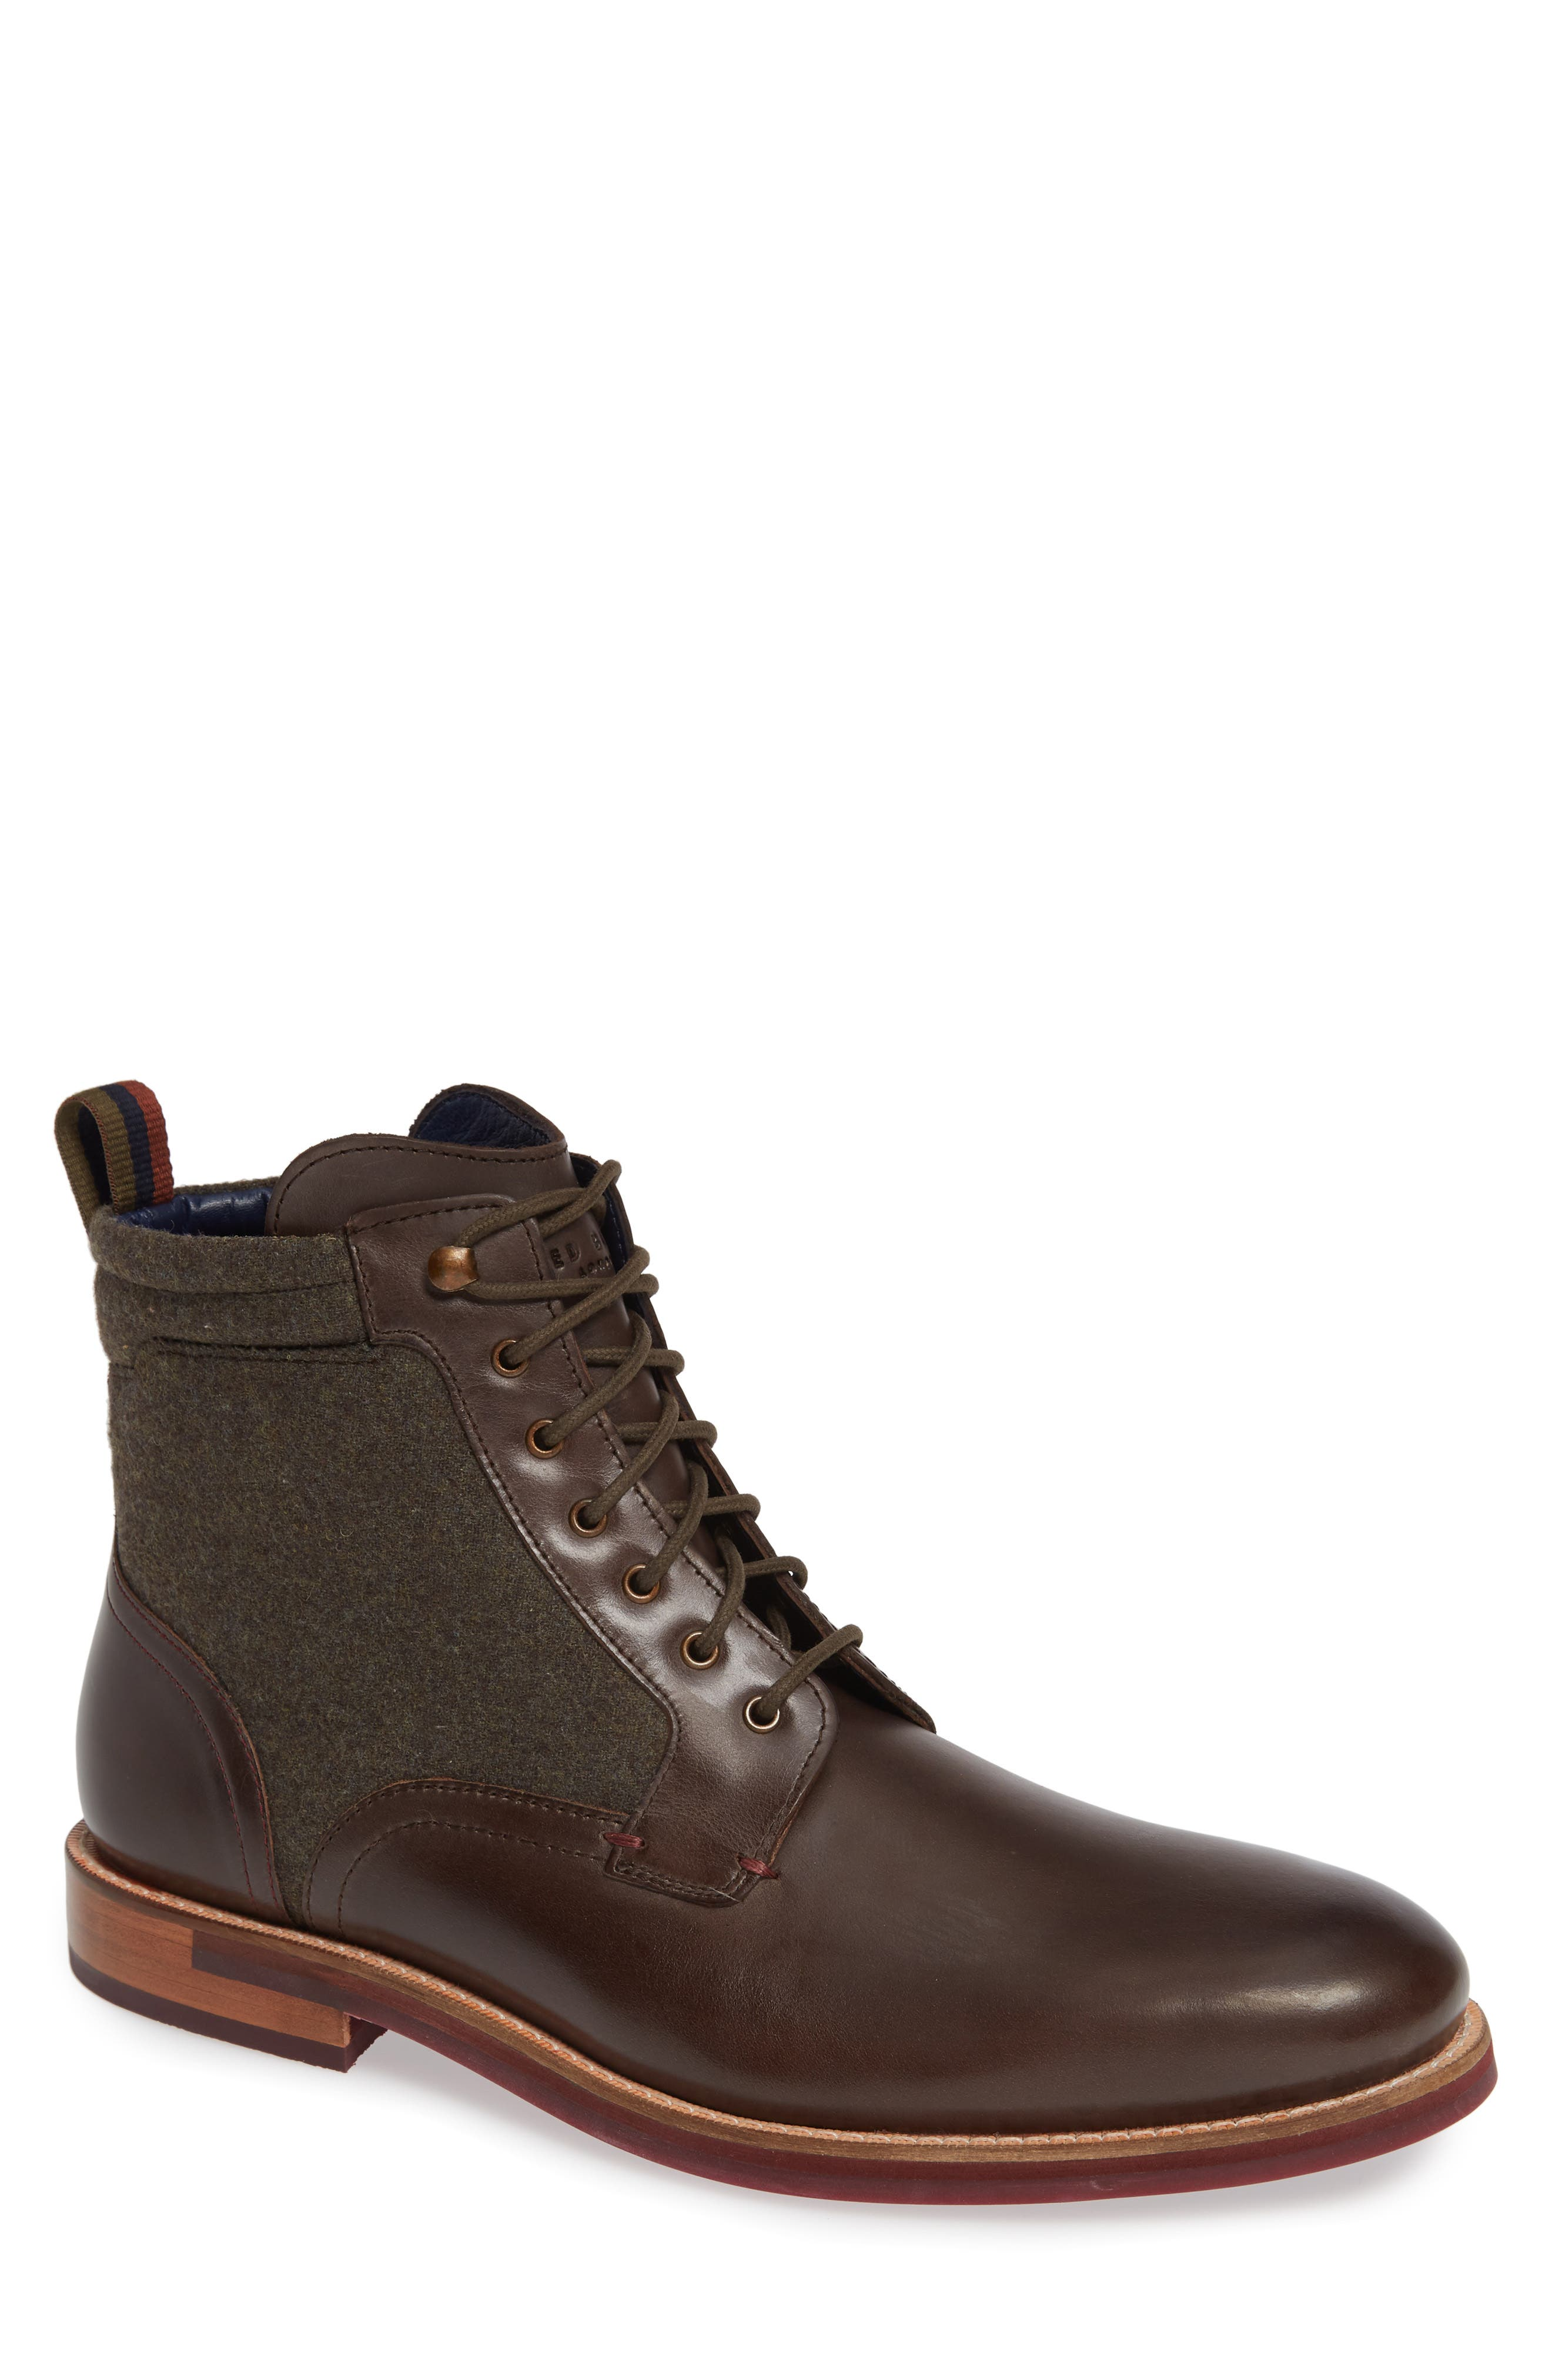 Axtoni Boot,                         Main,                         color, BROWN LEATHER